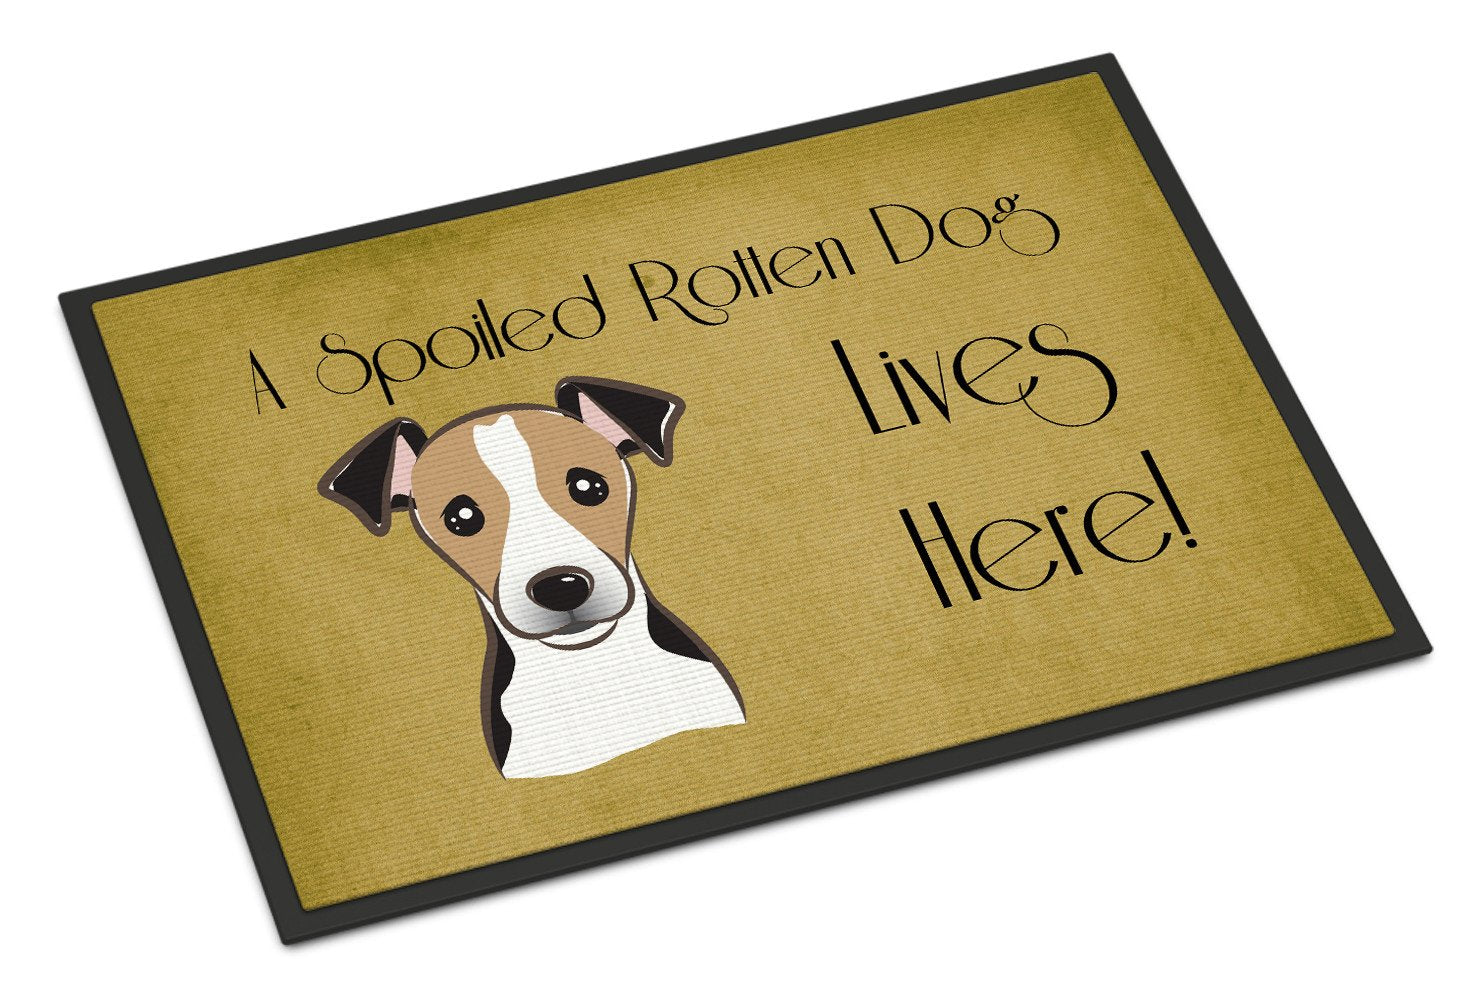 Jack Russell Terrier Spoiled Dog Lives Here Indoor or Outdoor Mat 18x27 BB1509MAT - the-store.com